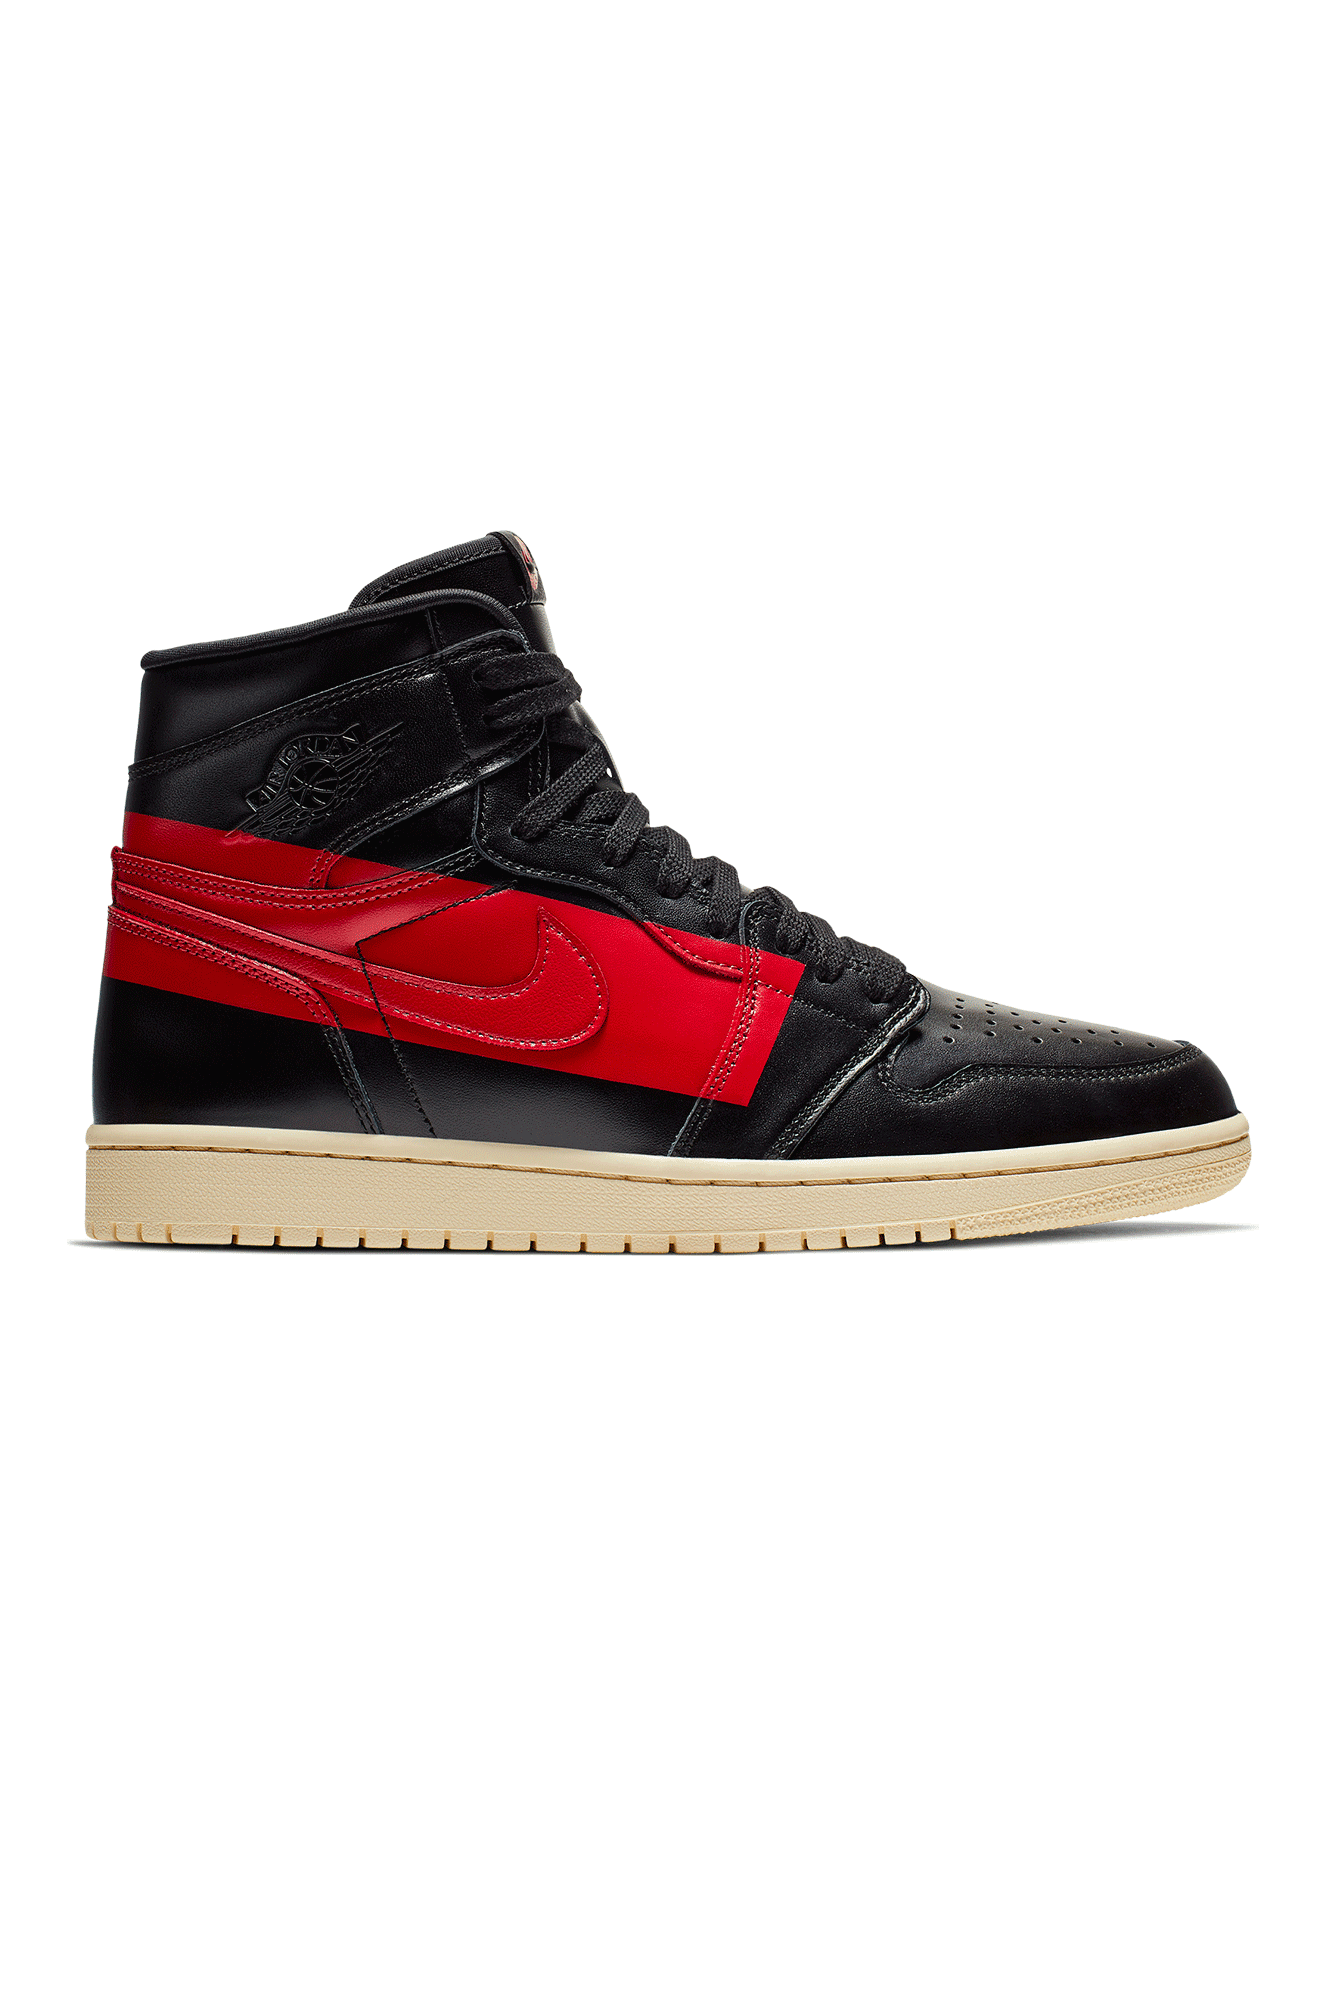 Air Jordan Sneakers 1 Retro High OG Nero Nero - One Block Down